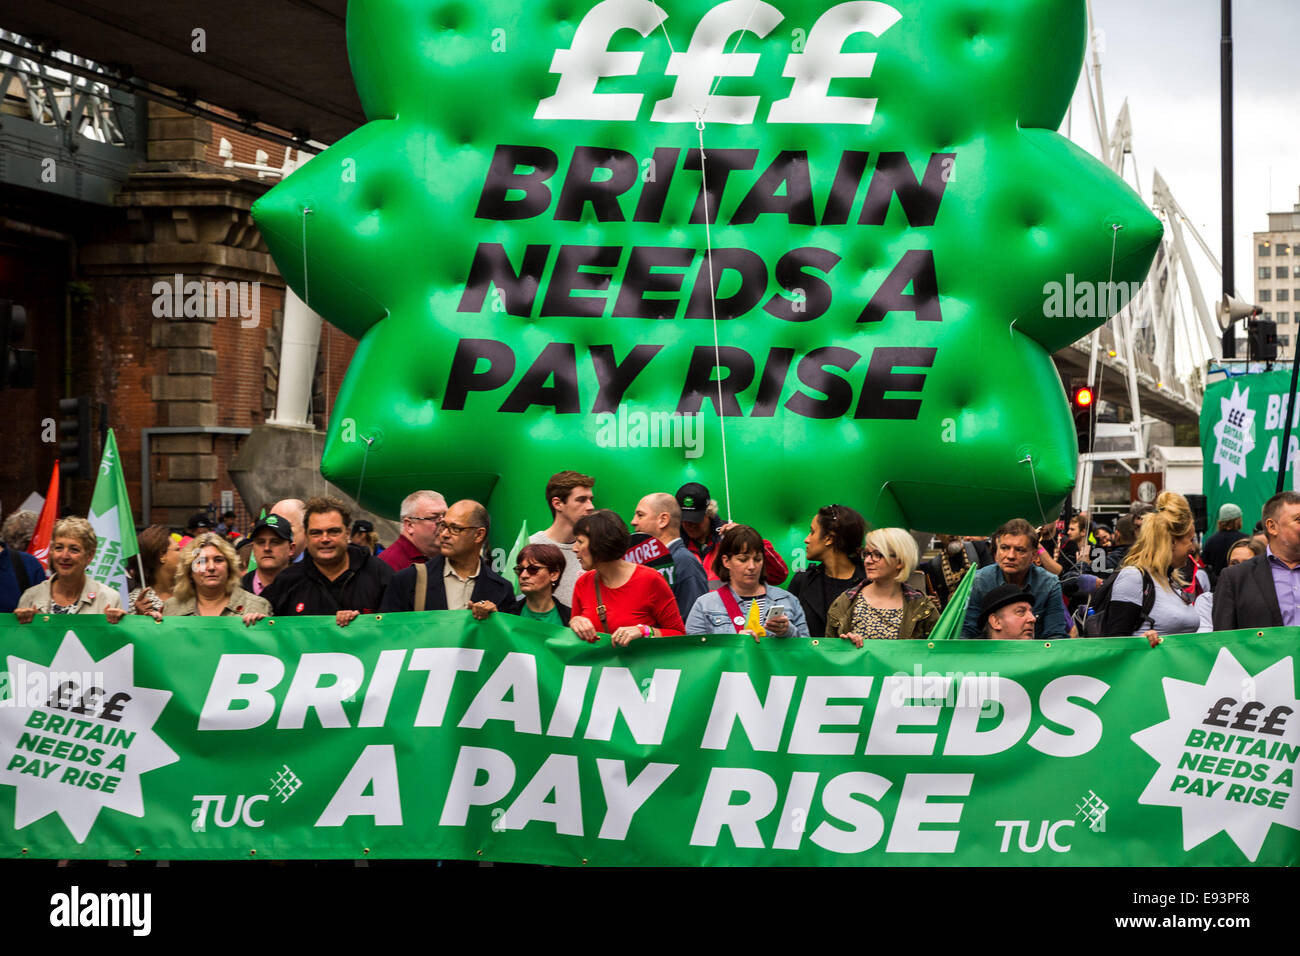 London, UK. 18th Oct, 2014.  'Britain Needs A Pay Rise' National Demonstration Credit:  Guy Corbishley/Alamy - Stock Image